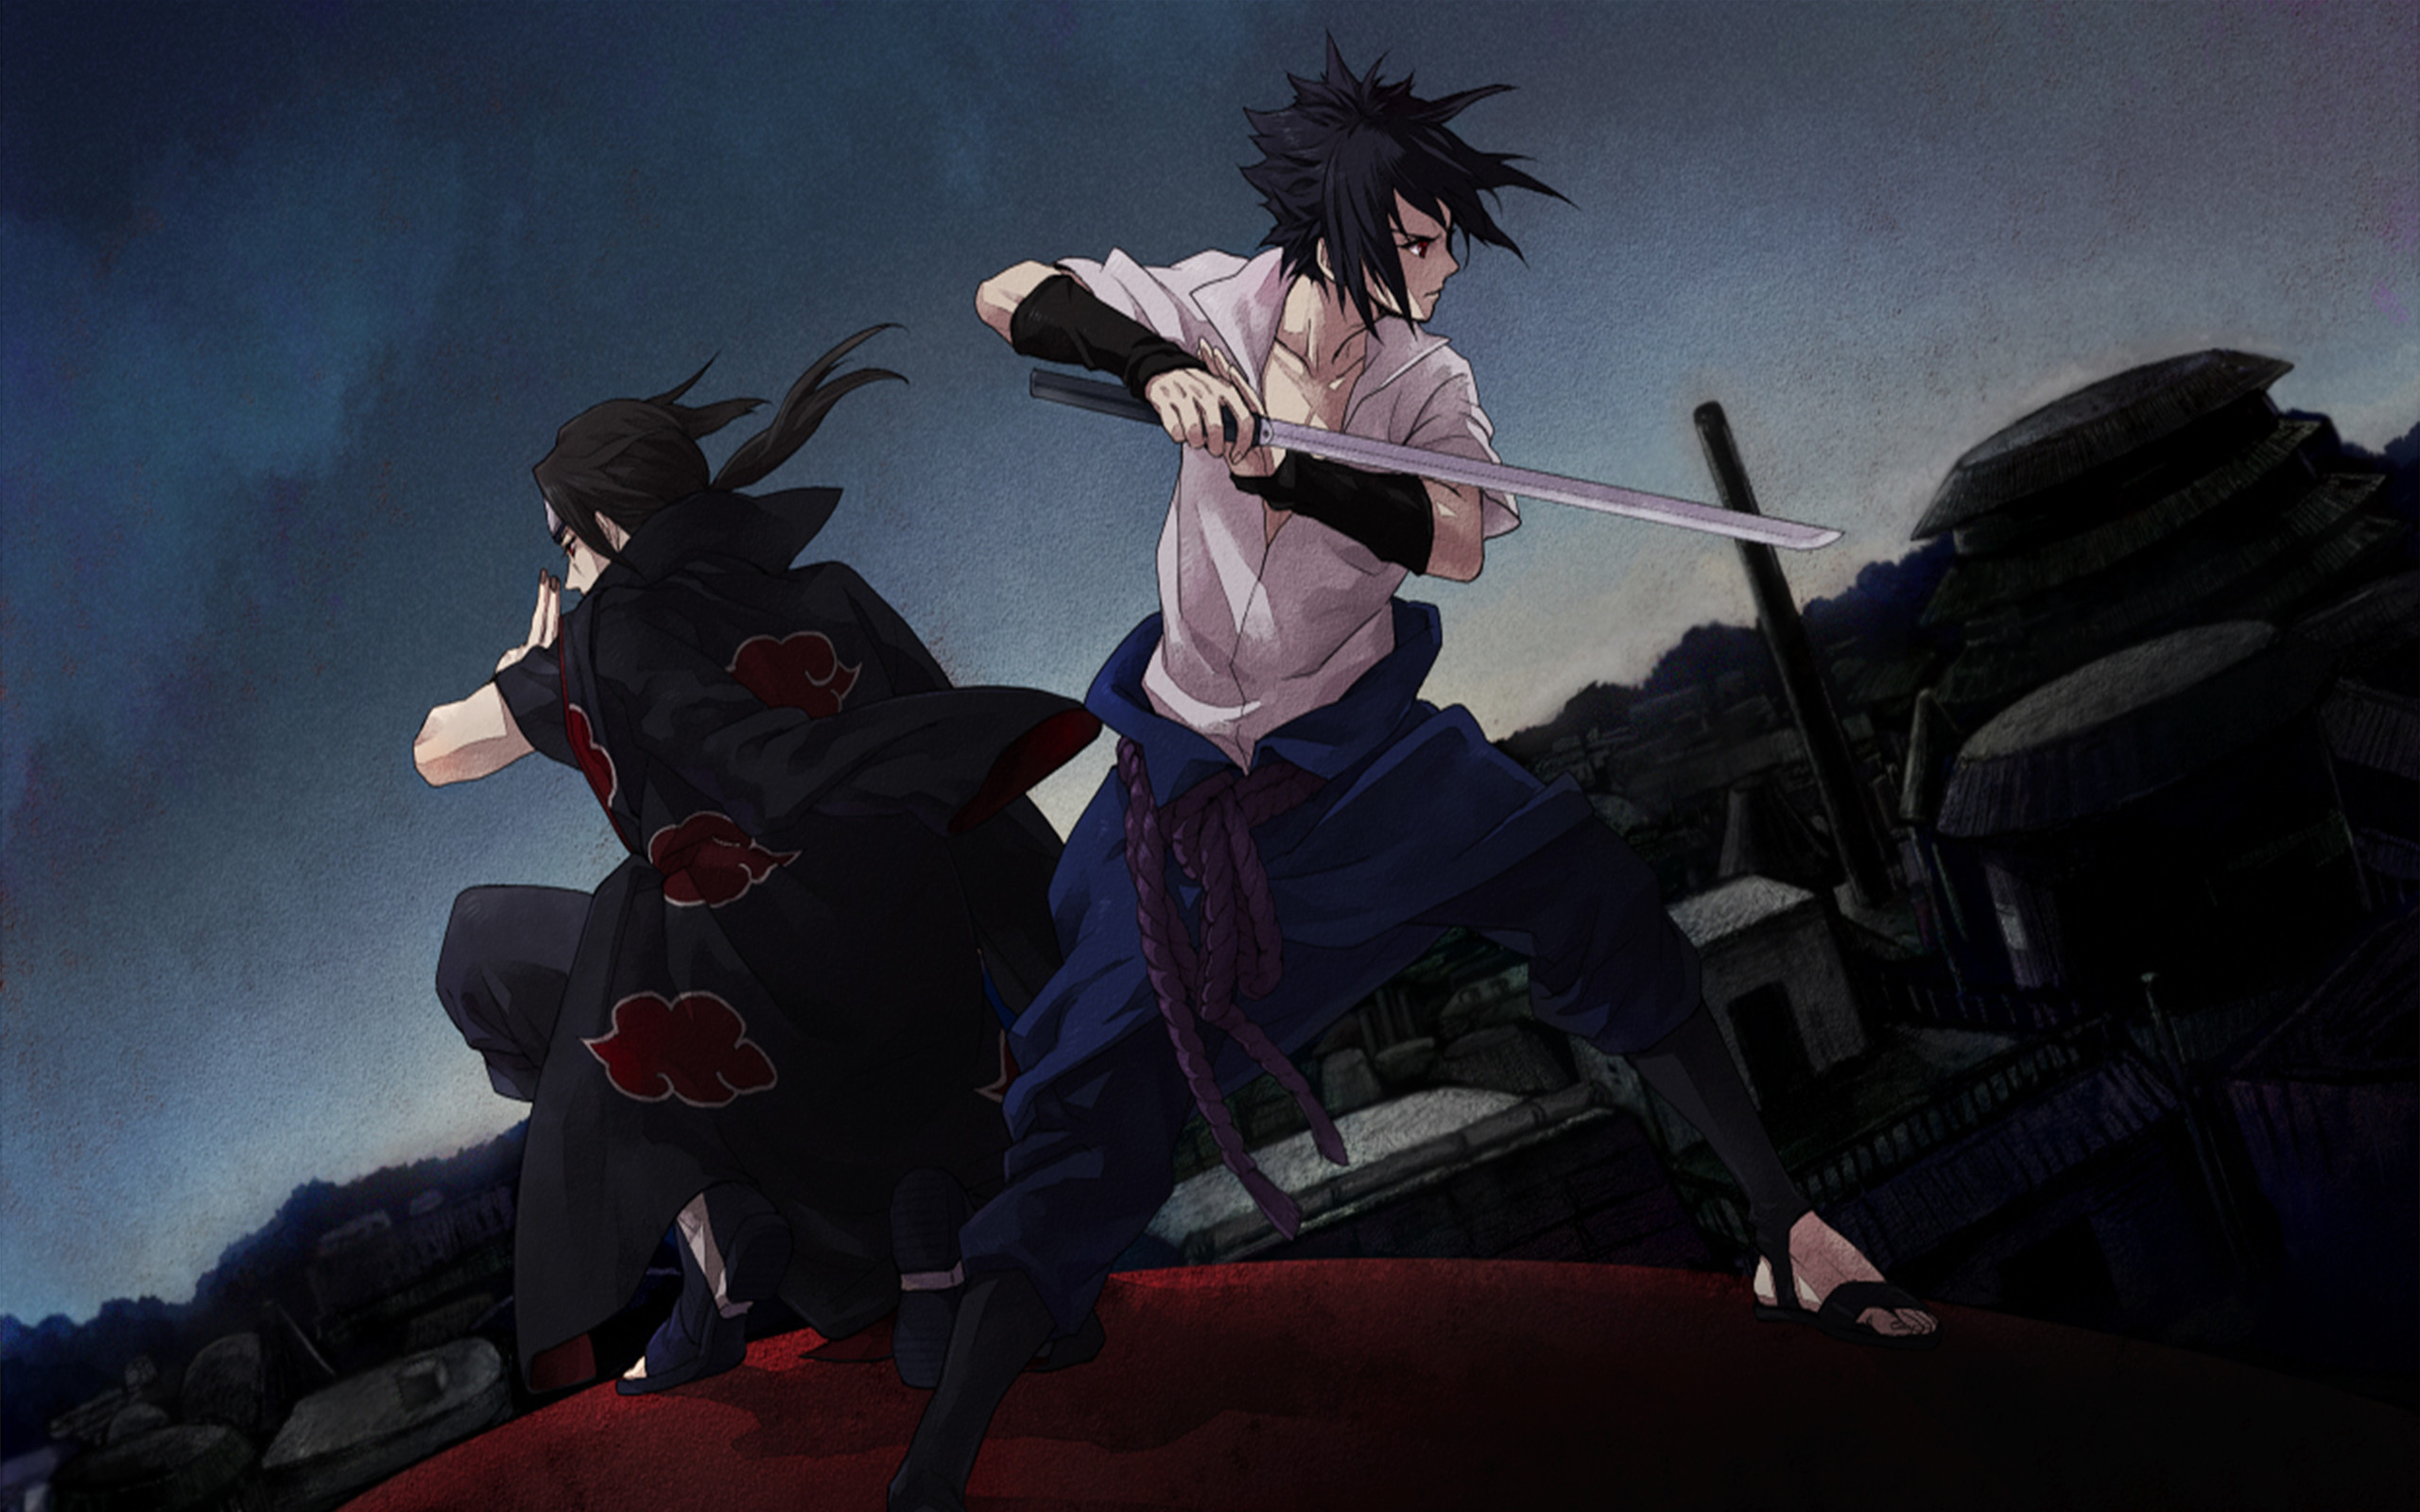 uchiha brothers a· download uchiha brothers image